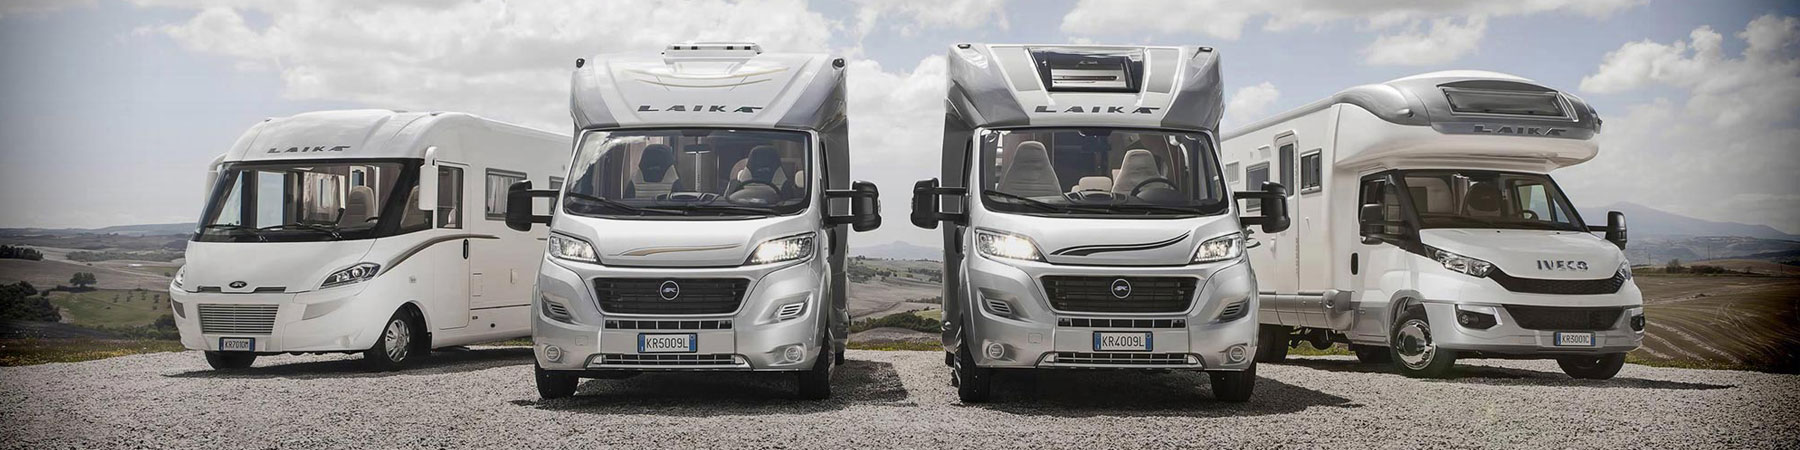 Cool Motorhome Hire Ireland  Motorhome Rental Ireland